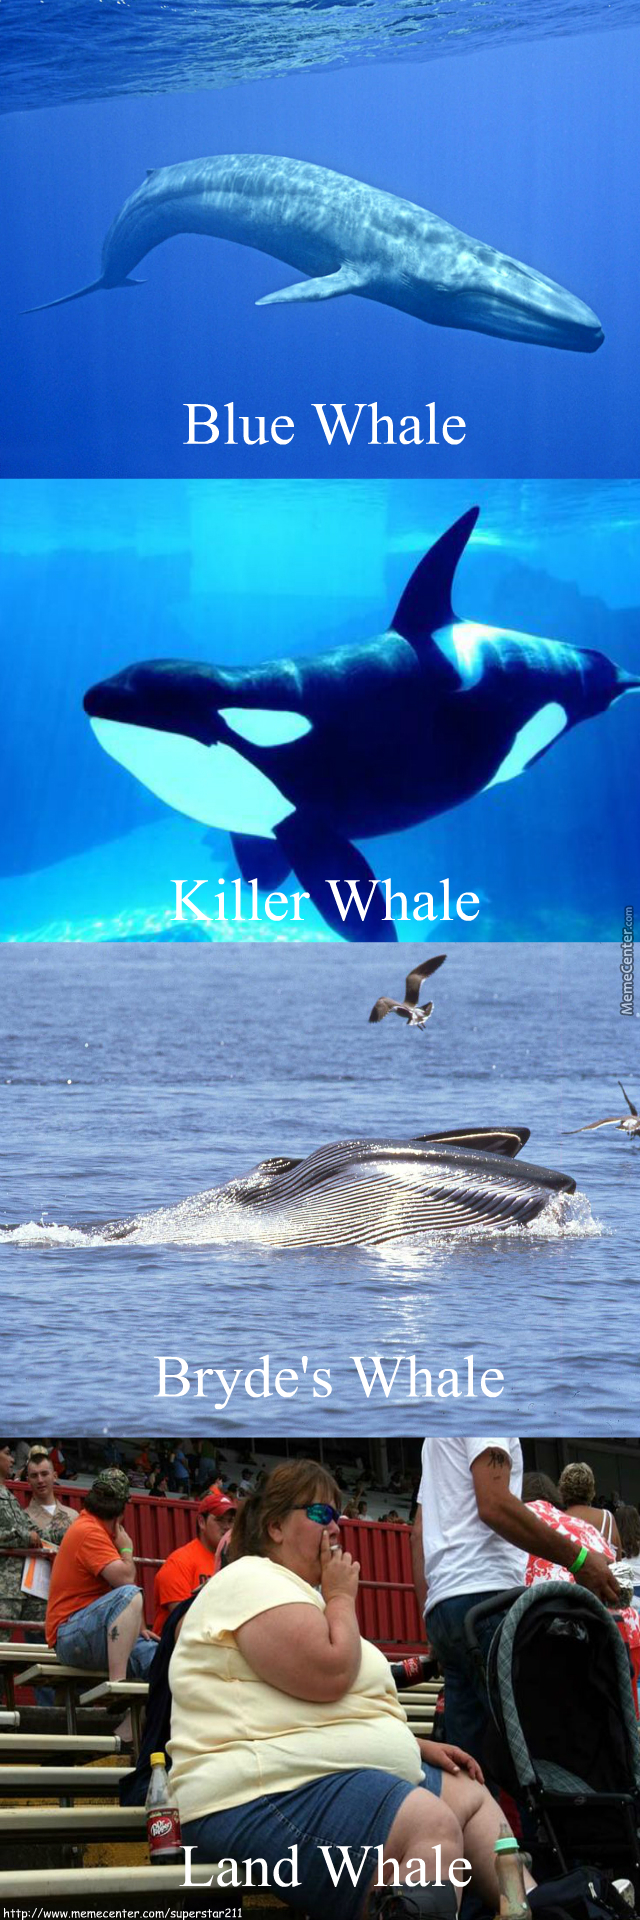 Today Kids We Are Going To Talk About Whales!